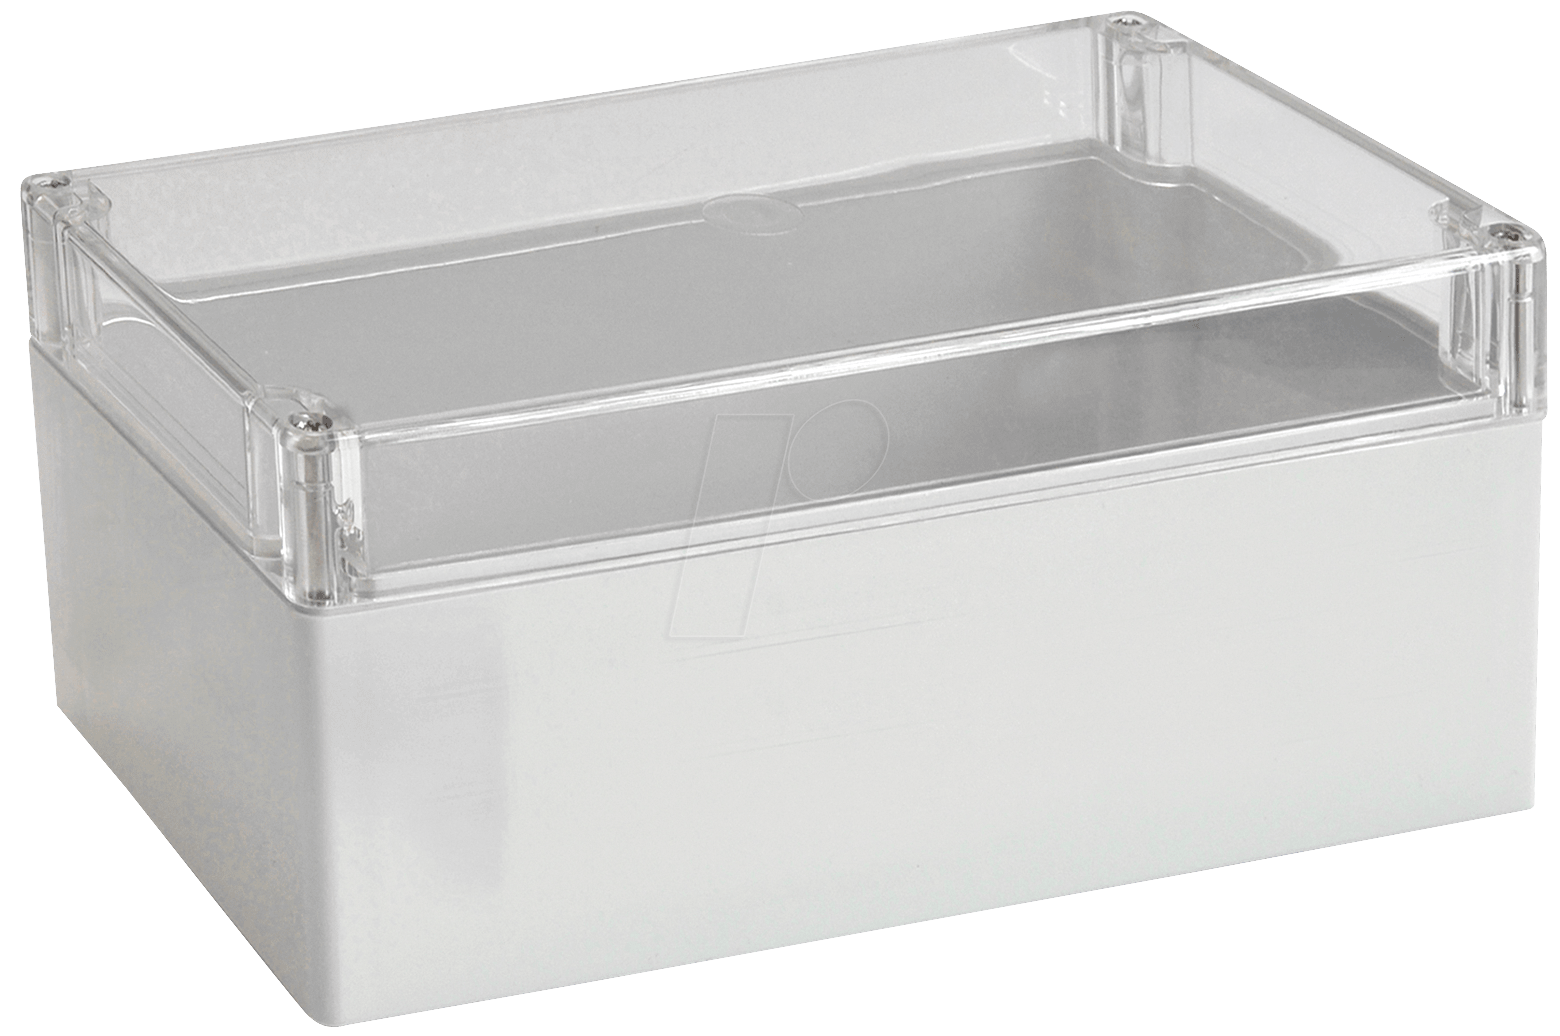 Bopla m 223 g polycarbonate box with clear lid 200x150x75mm at reichelt ele - Chaises en polycarbonate transparent ...